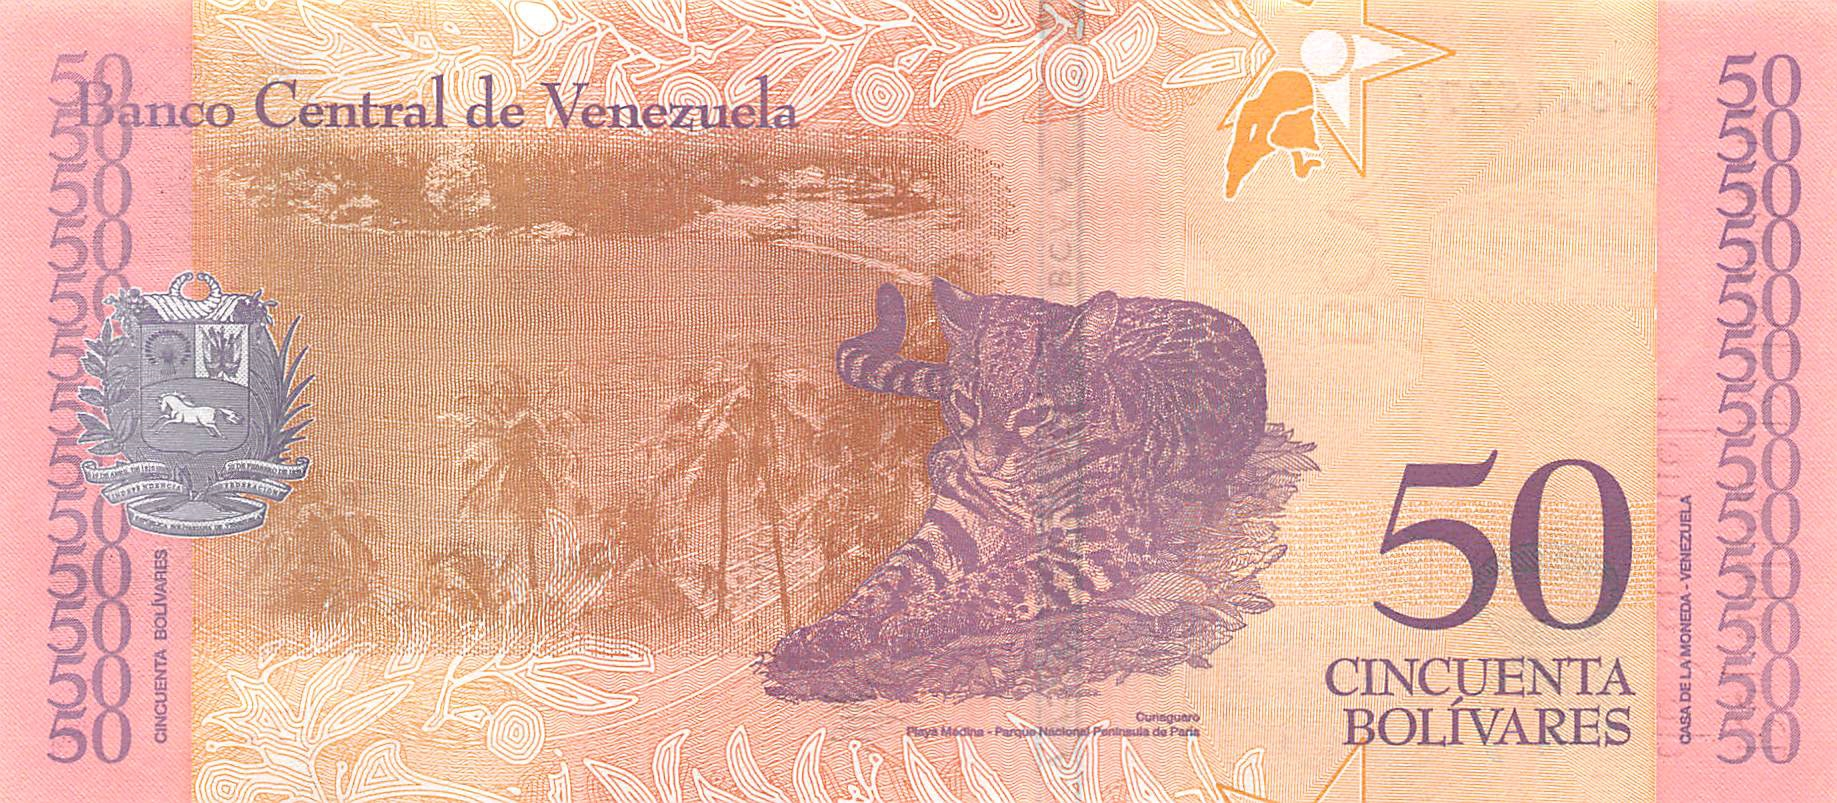 Bolivares Venezuela 5000 2017 P-New Z-Prefix UNC /> REPLACEMENT 5,000